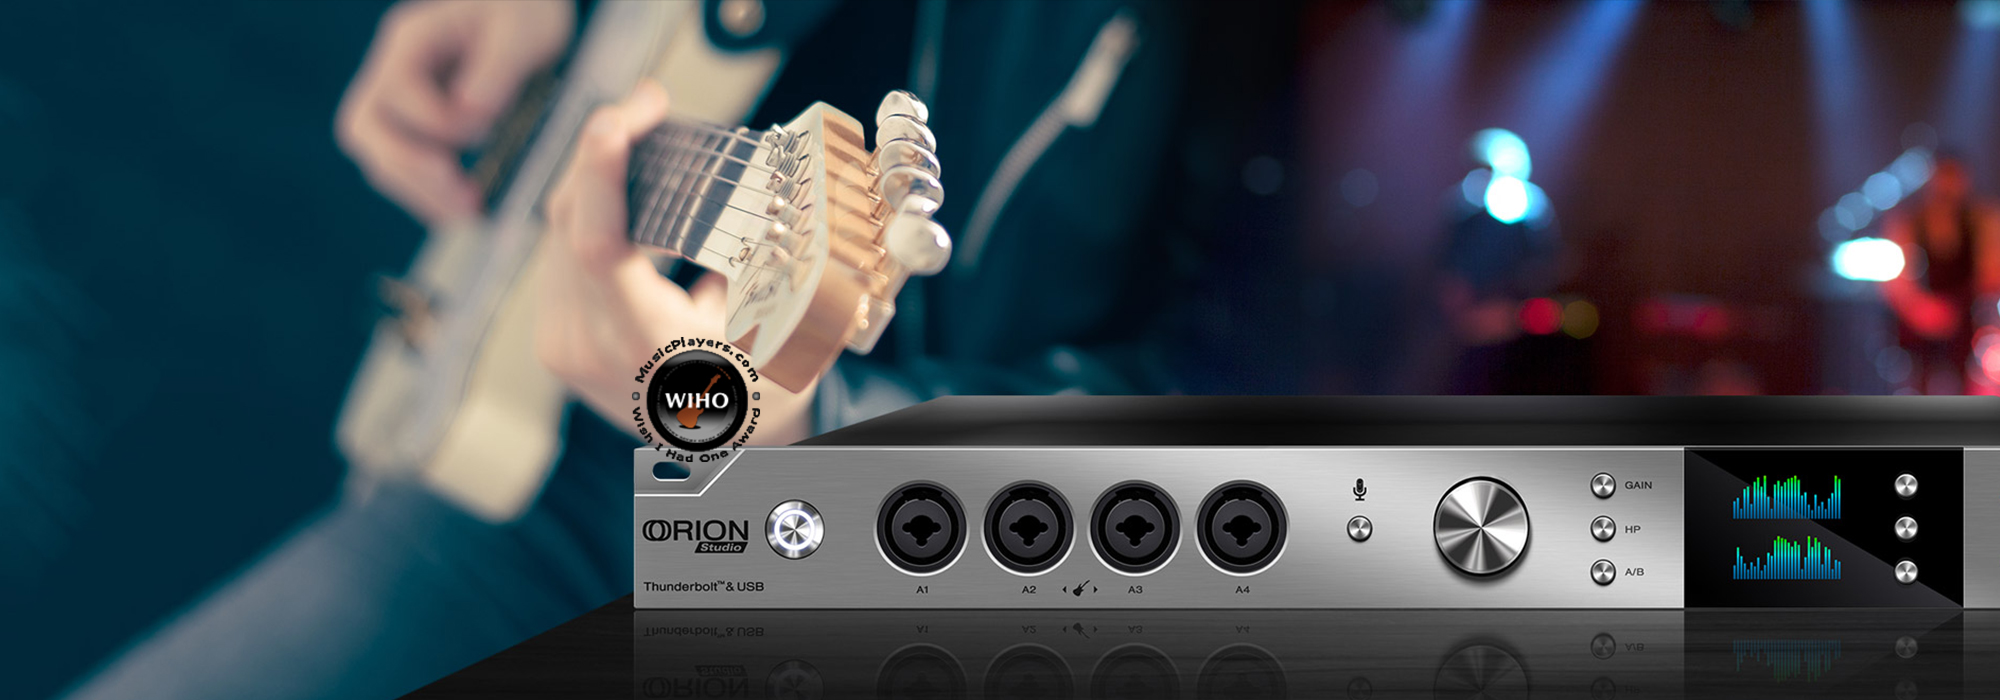 Orion Studio with top Sound & Features according to MusicPlayers